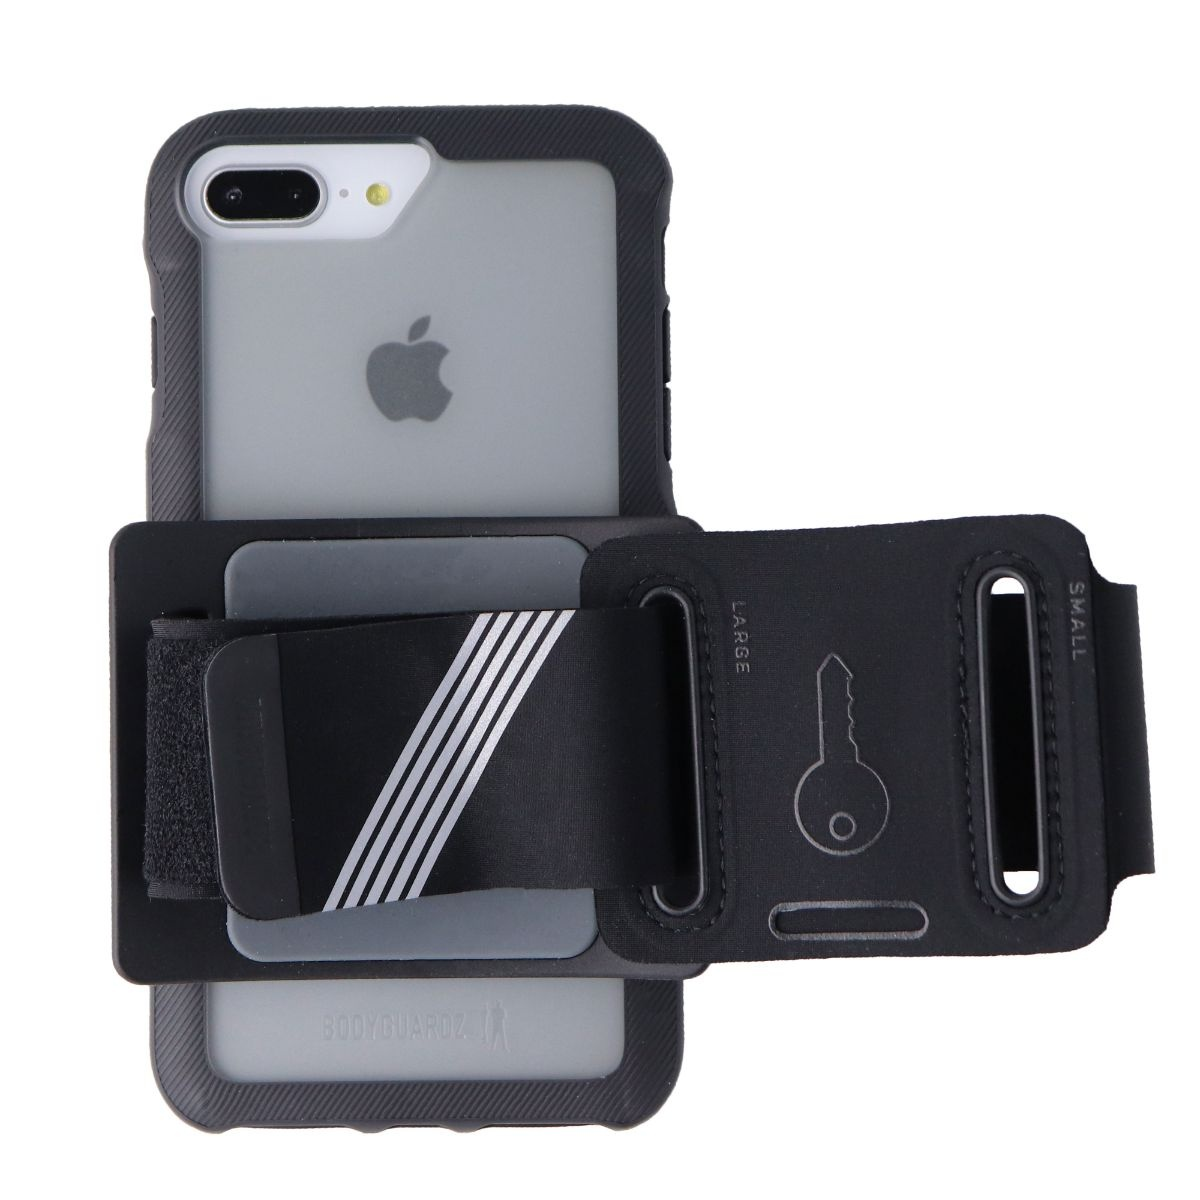 BodyGuardz Trainr Pro Case and Armband for Apple iPhone 7 Plus - Frosted / Blk